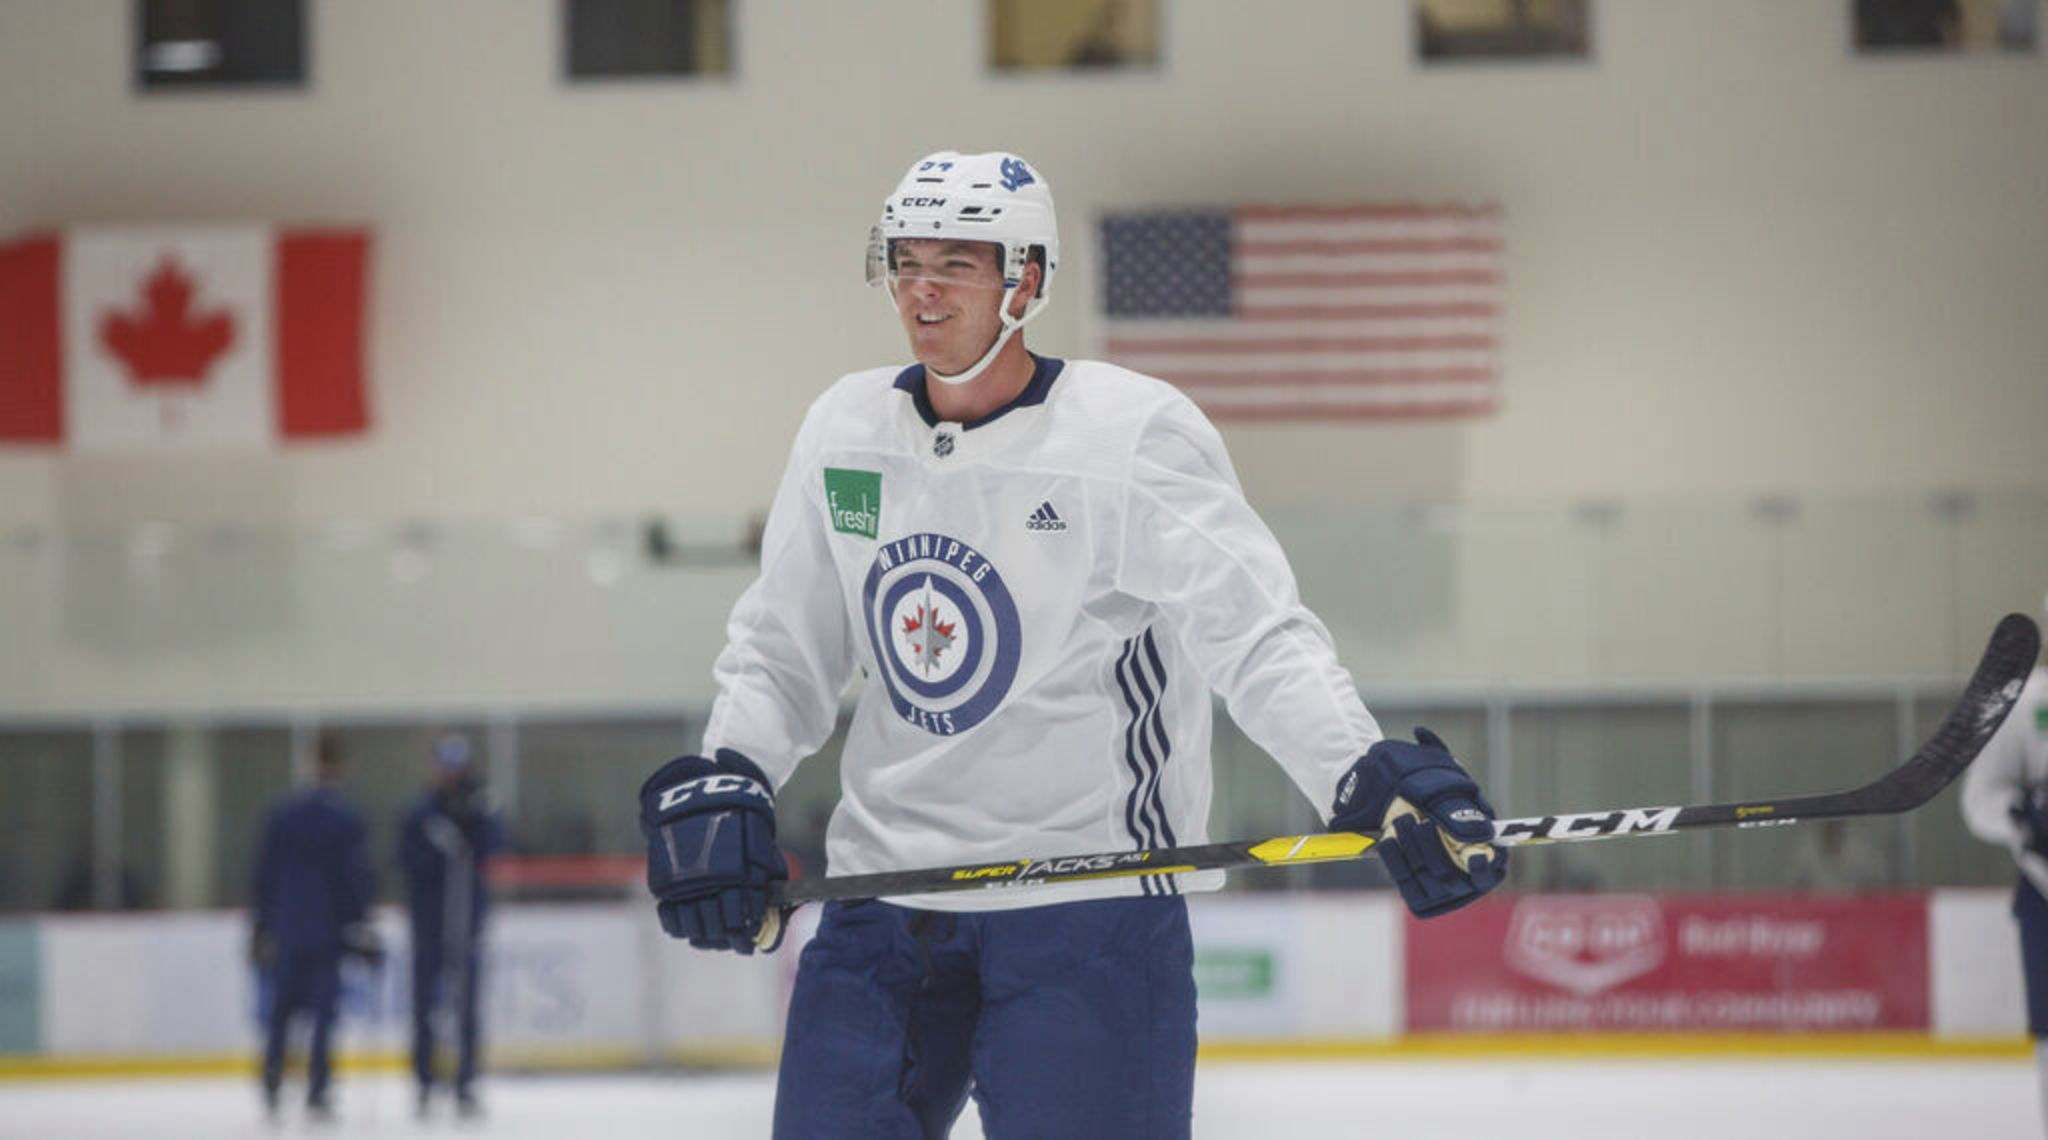 MIKE DEAL / WINNIPEG FREE PRESS FILES</p><p>Rookie defenceman Dylan Samberg, pictured during Winnipeg Jets 2019 development camp, is skating with the early group at the team's training camp, which opened Monday.</p>